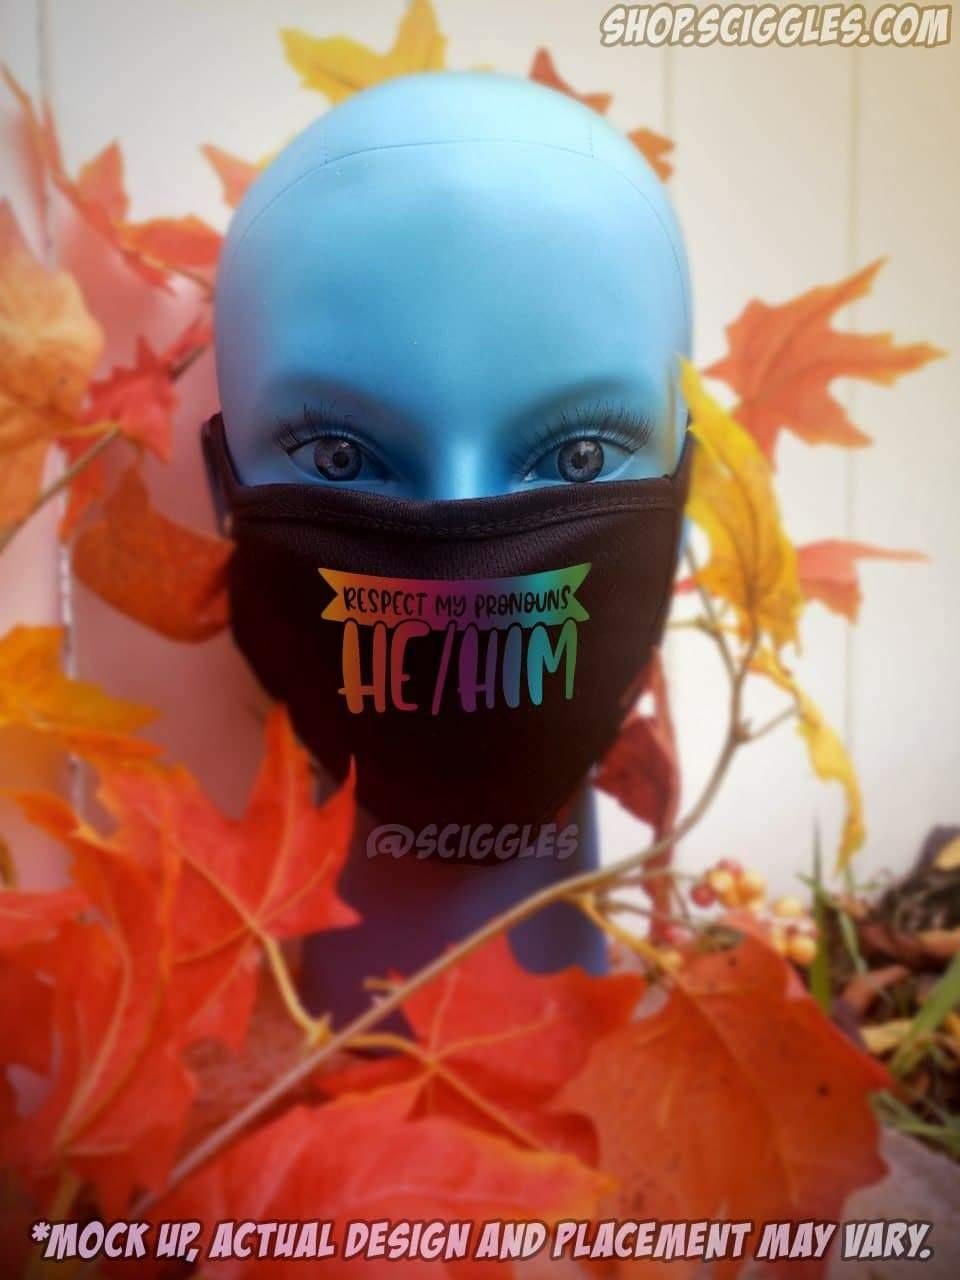 Face Masks - Preferred Pronouns, Face Masks - Sciggles